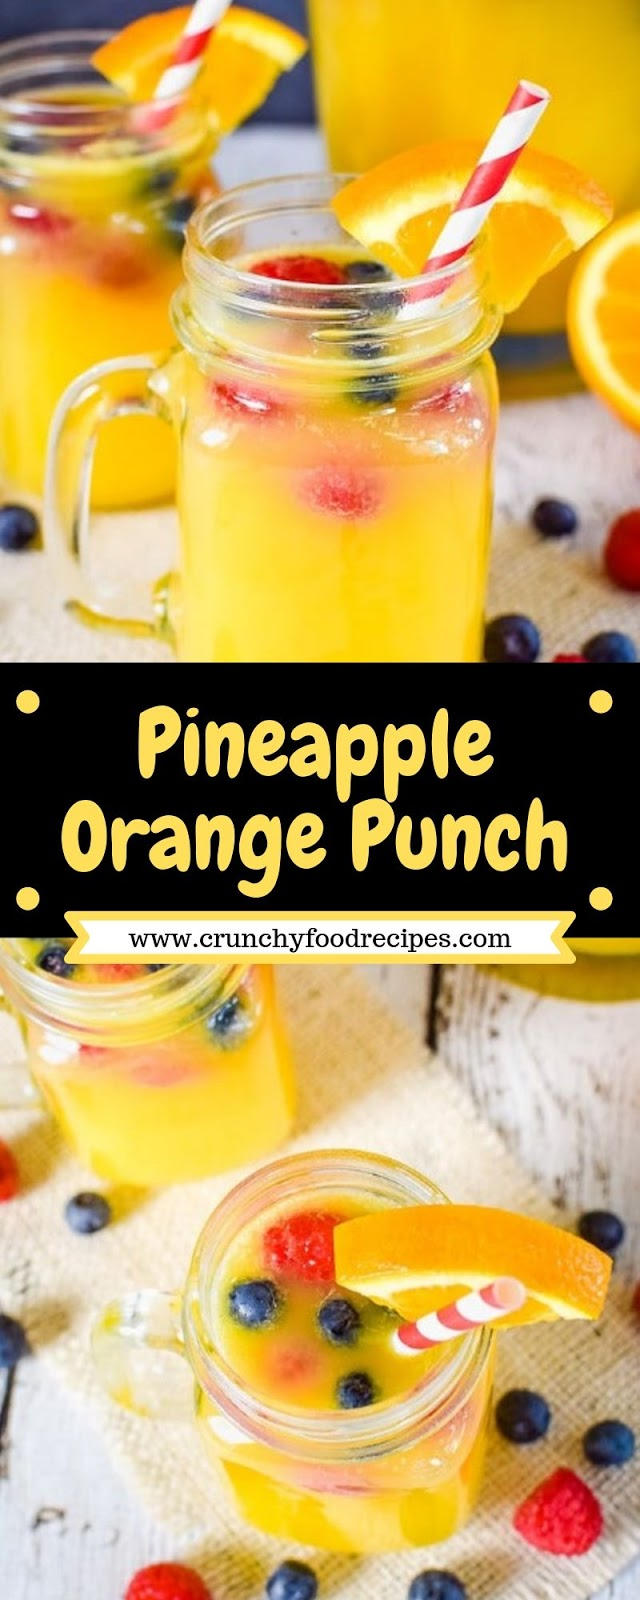 Pineapple Orange Punch